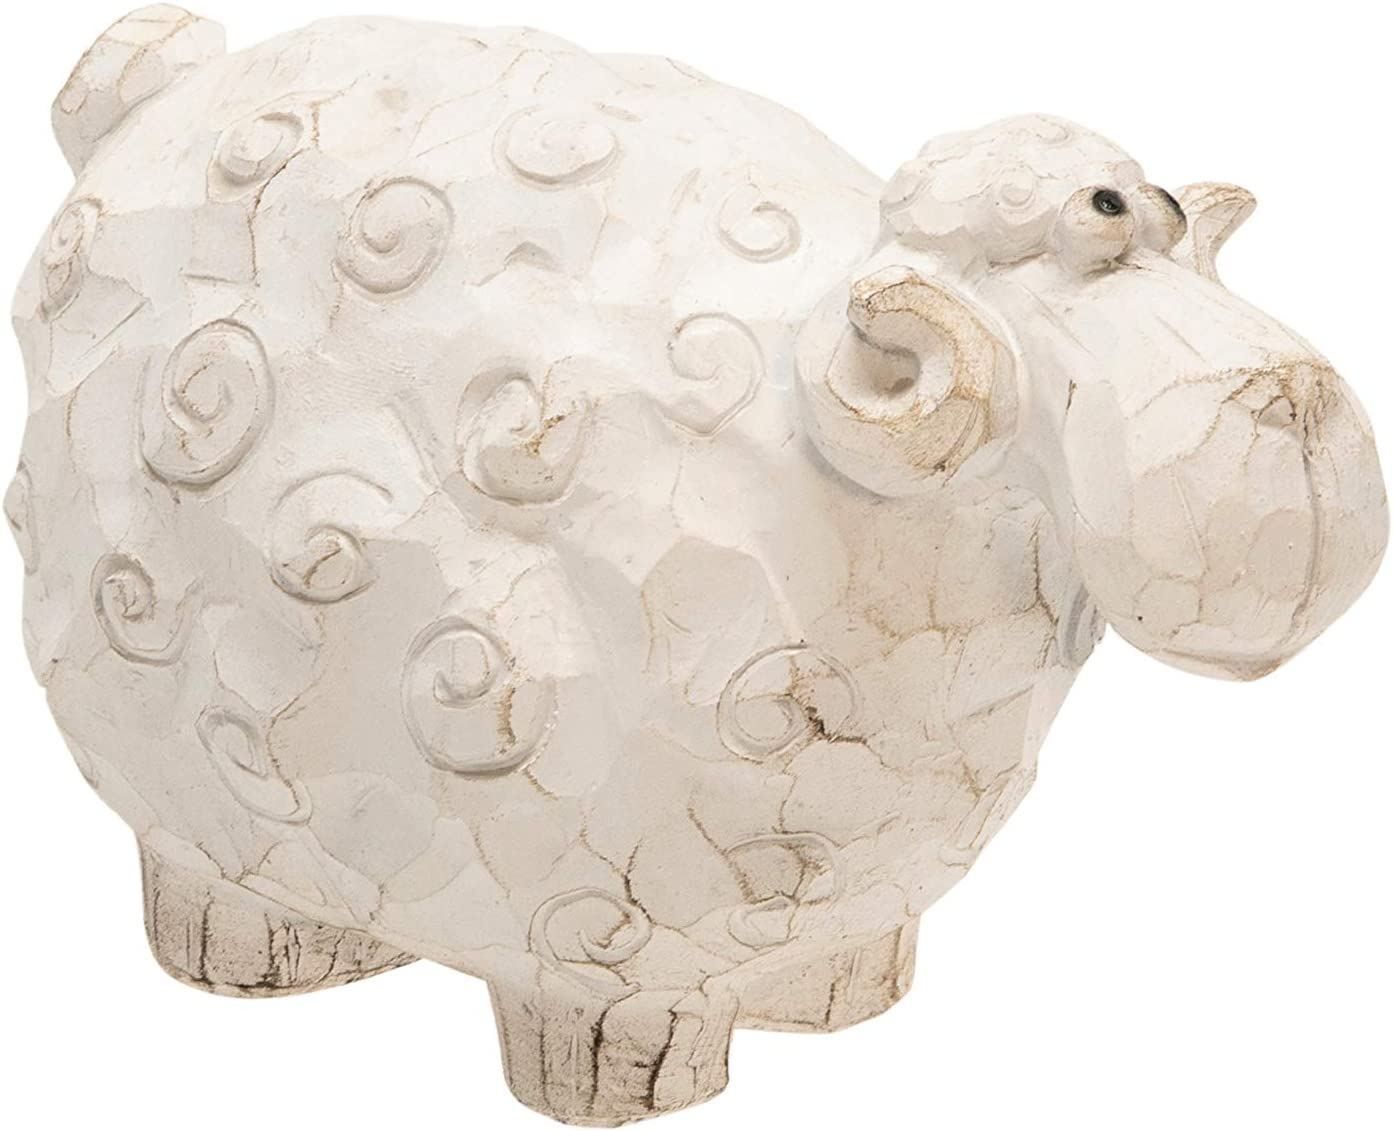 """Sagebrook Home 13585-01 Carved White Sheep 4.5"""", 6.75 x 3.75 x 4.5 inches"""